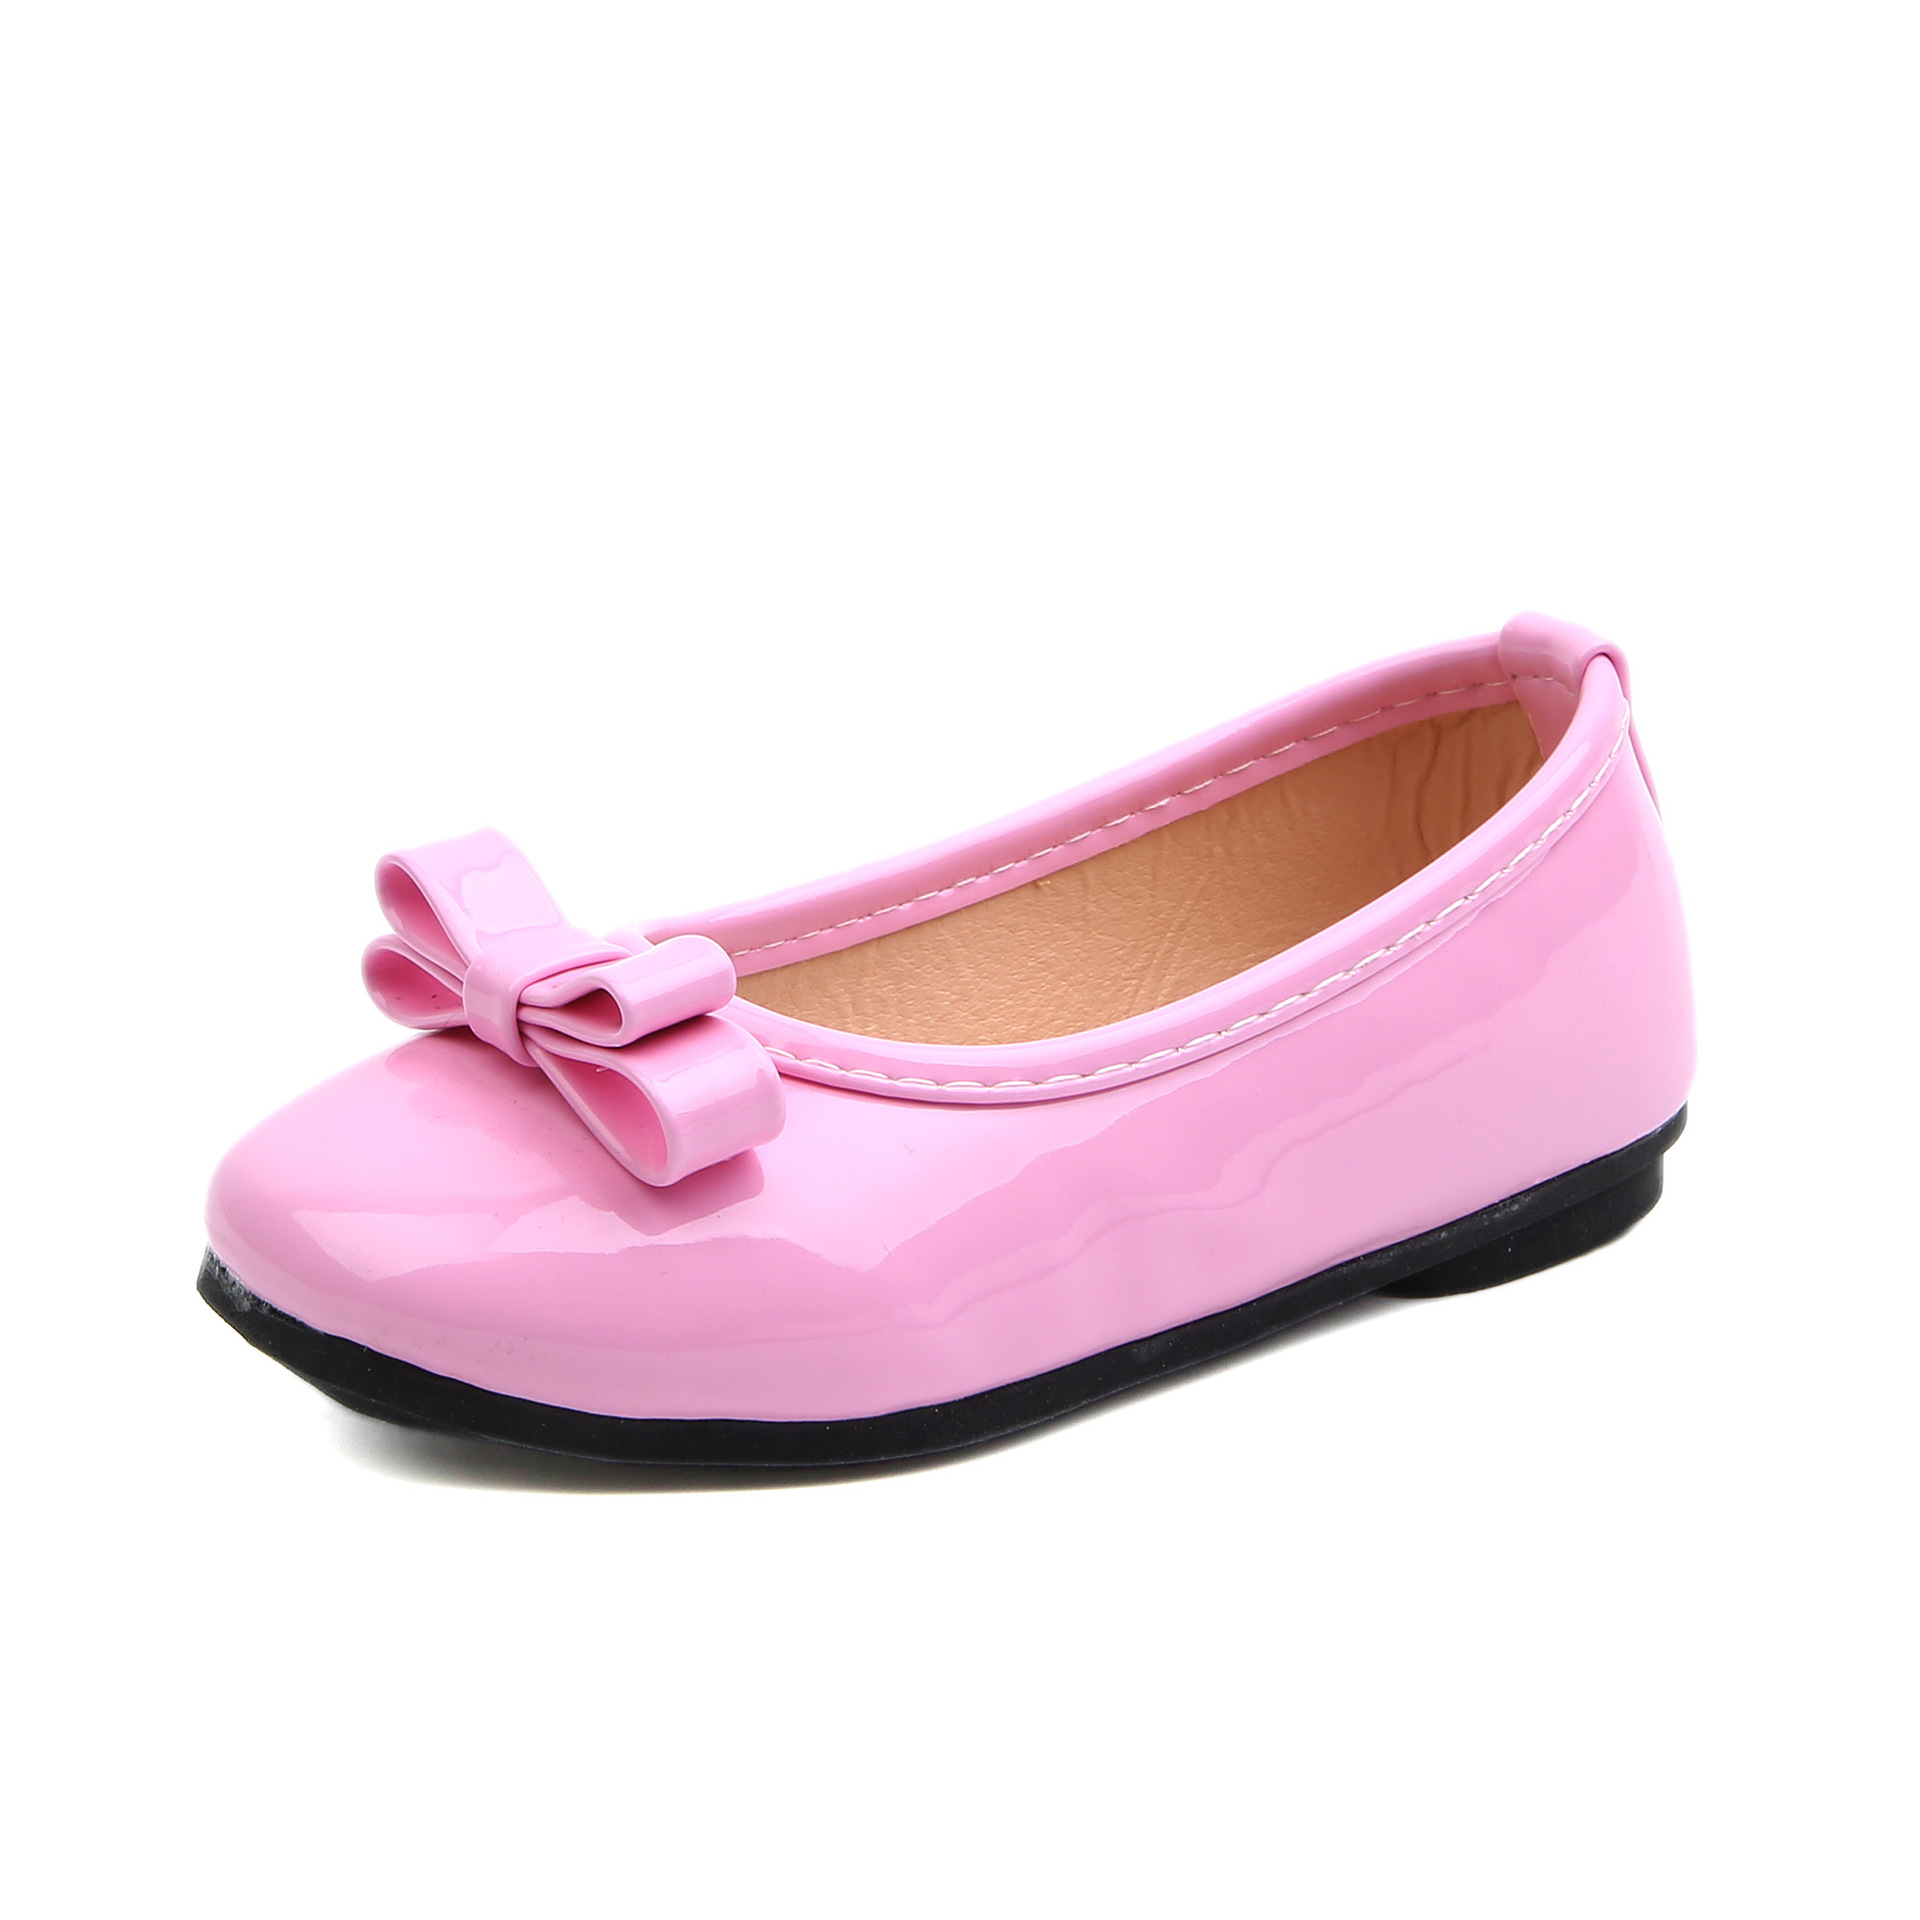 COZULMA 2019 Baby Girl Leather Shoes Kids Children Fashion Shoes Girls Princess Dress Shoes Candy Color Bow Party Dance Shoes in Sneakers from Mother Kids